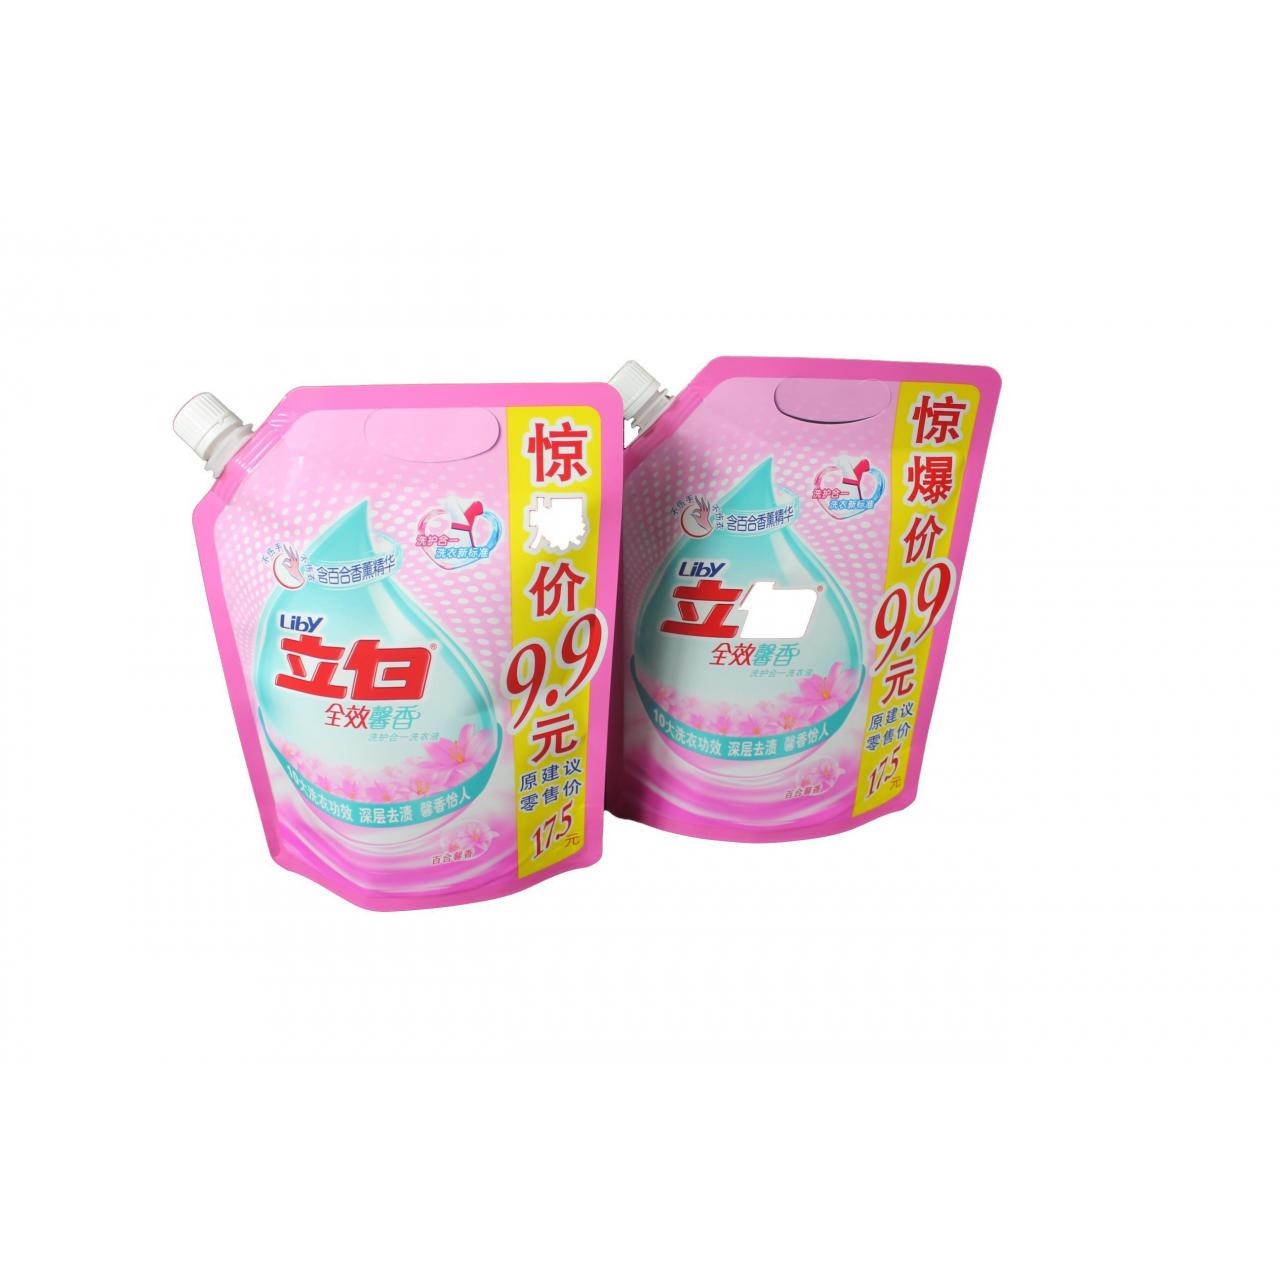 900g detergent or washing liquid packaging pouch with spout and handle